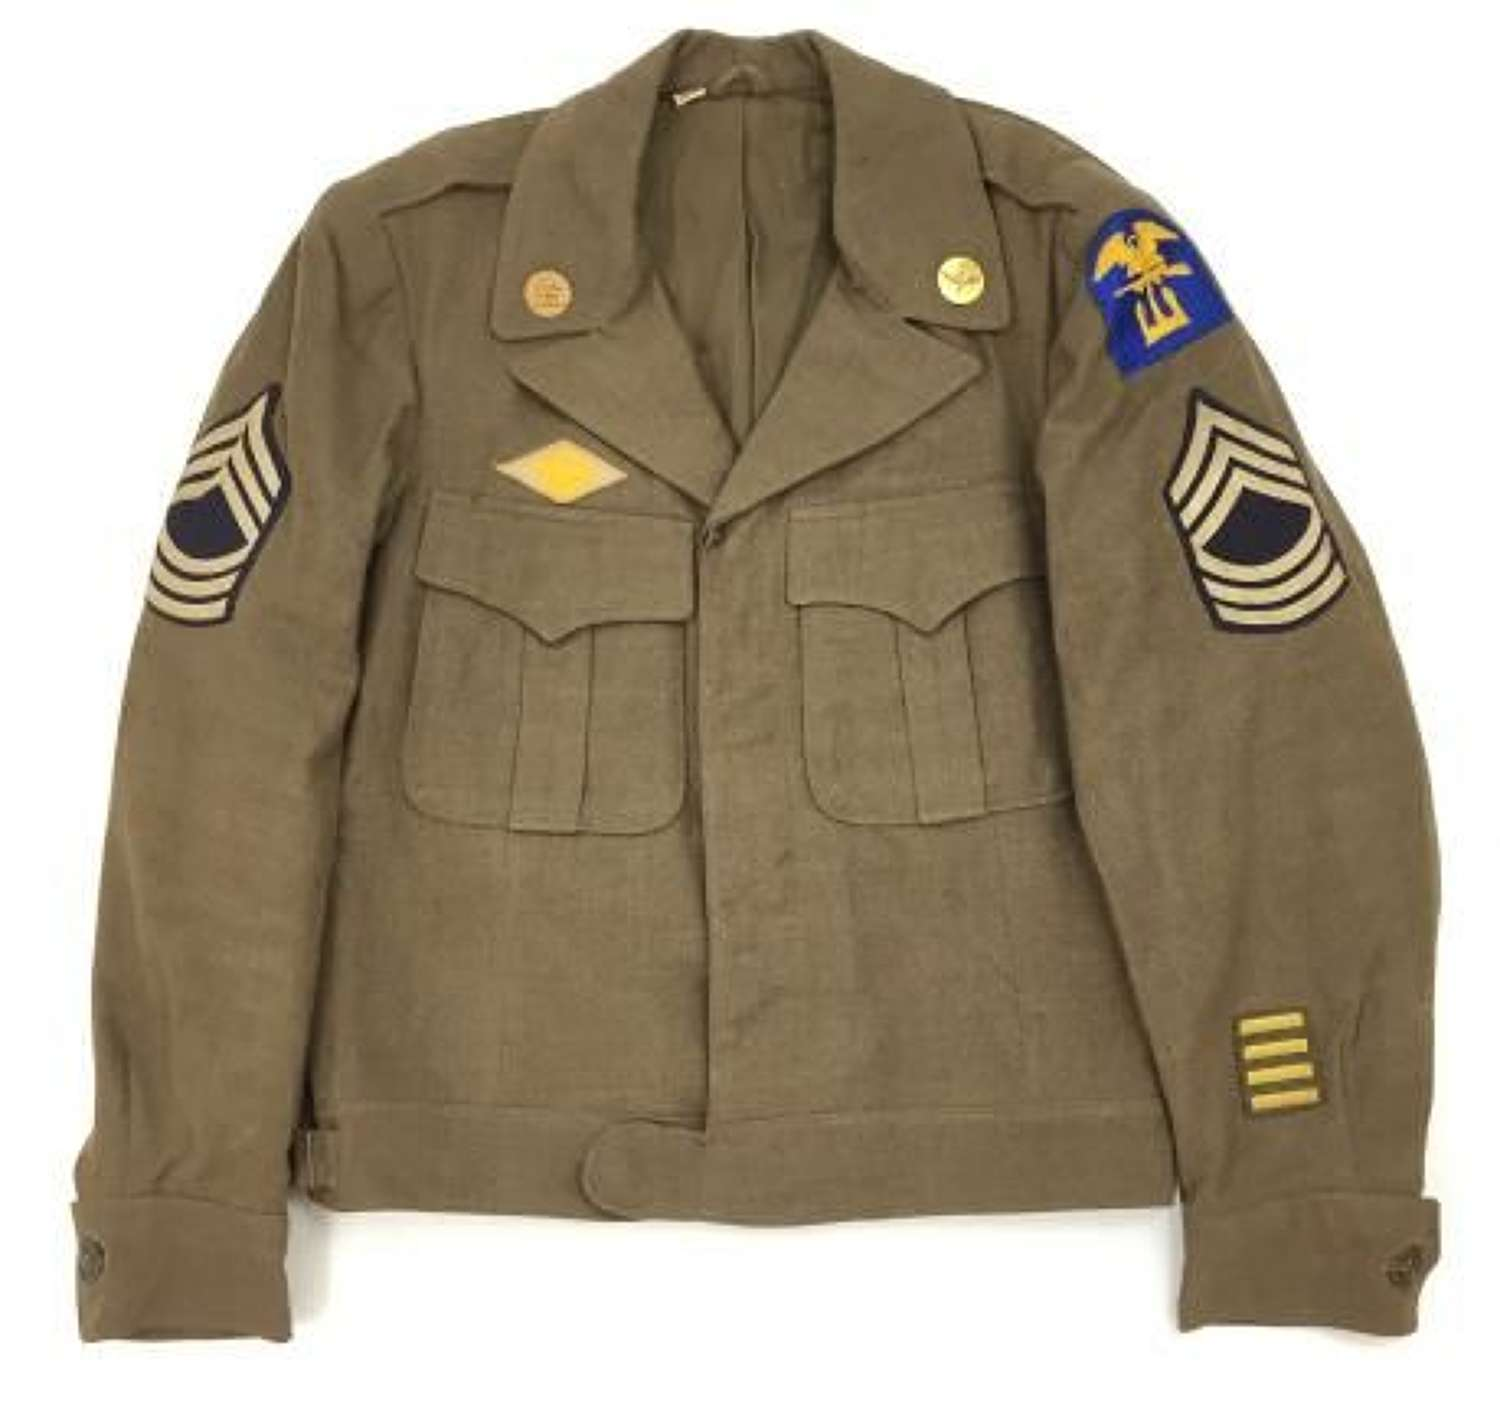 Original 1944 Dated US Army Ike Jacket - Size 38 R